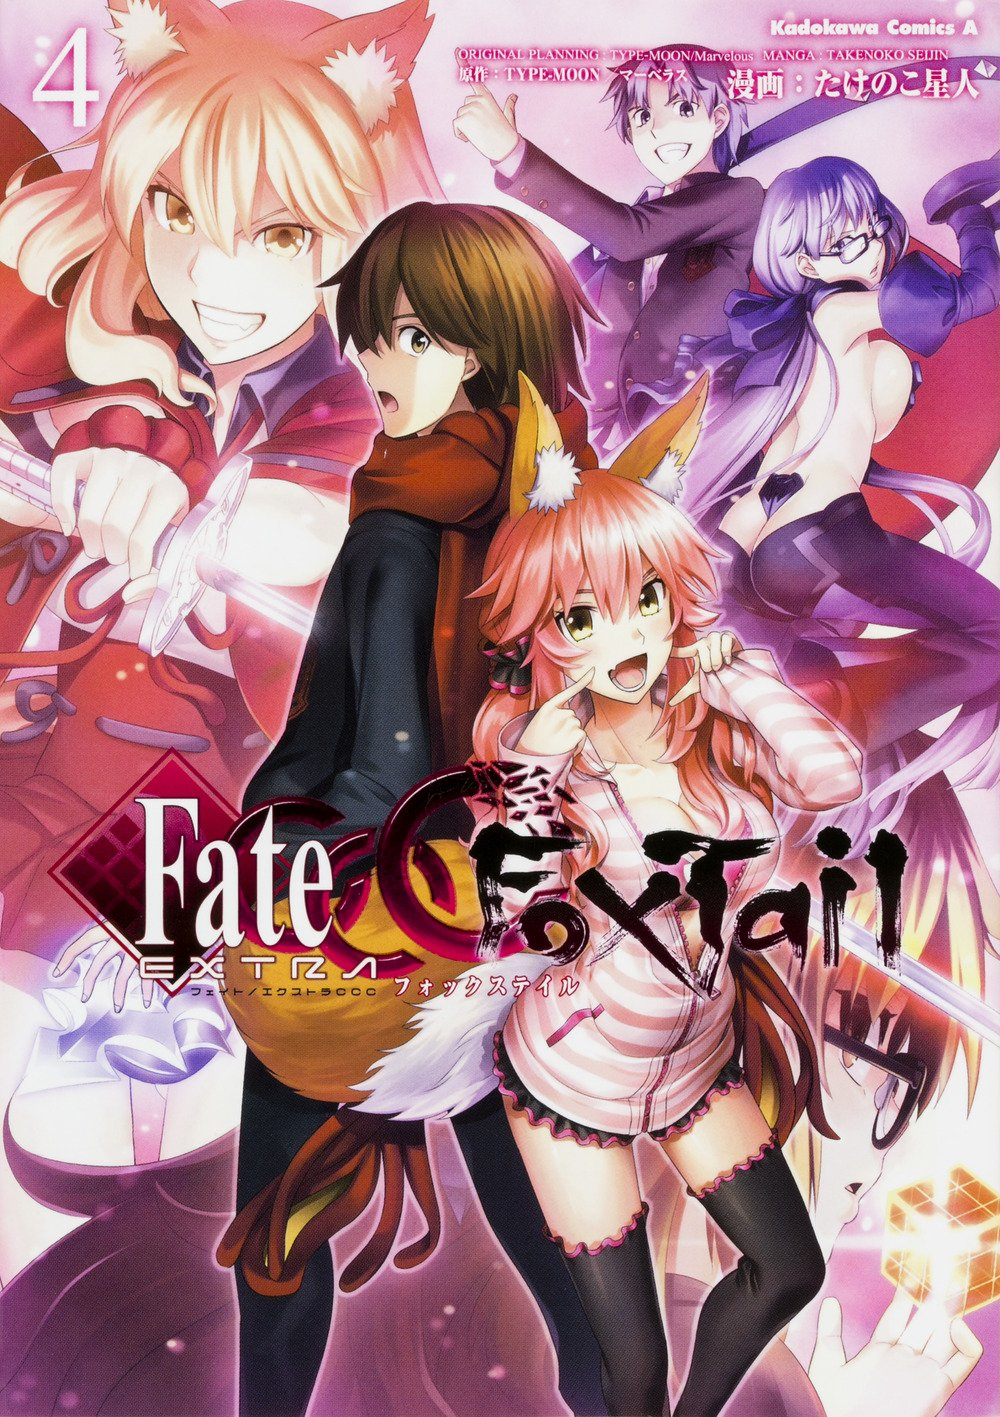 Fate Extra ccc guide fox Tail manga 21 5話